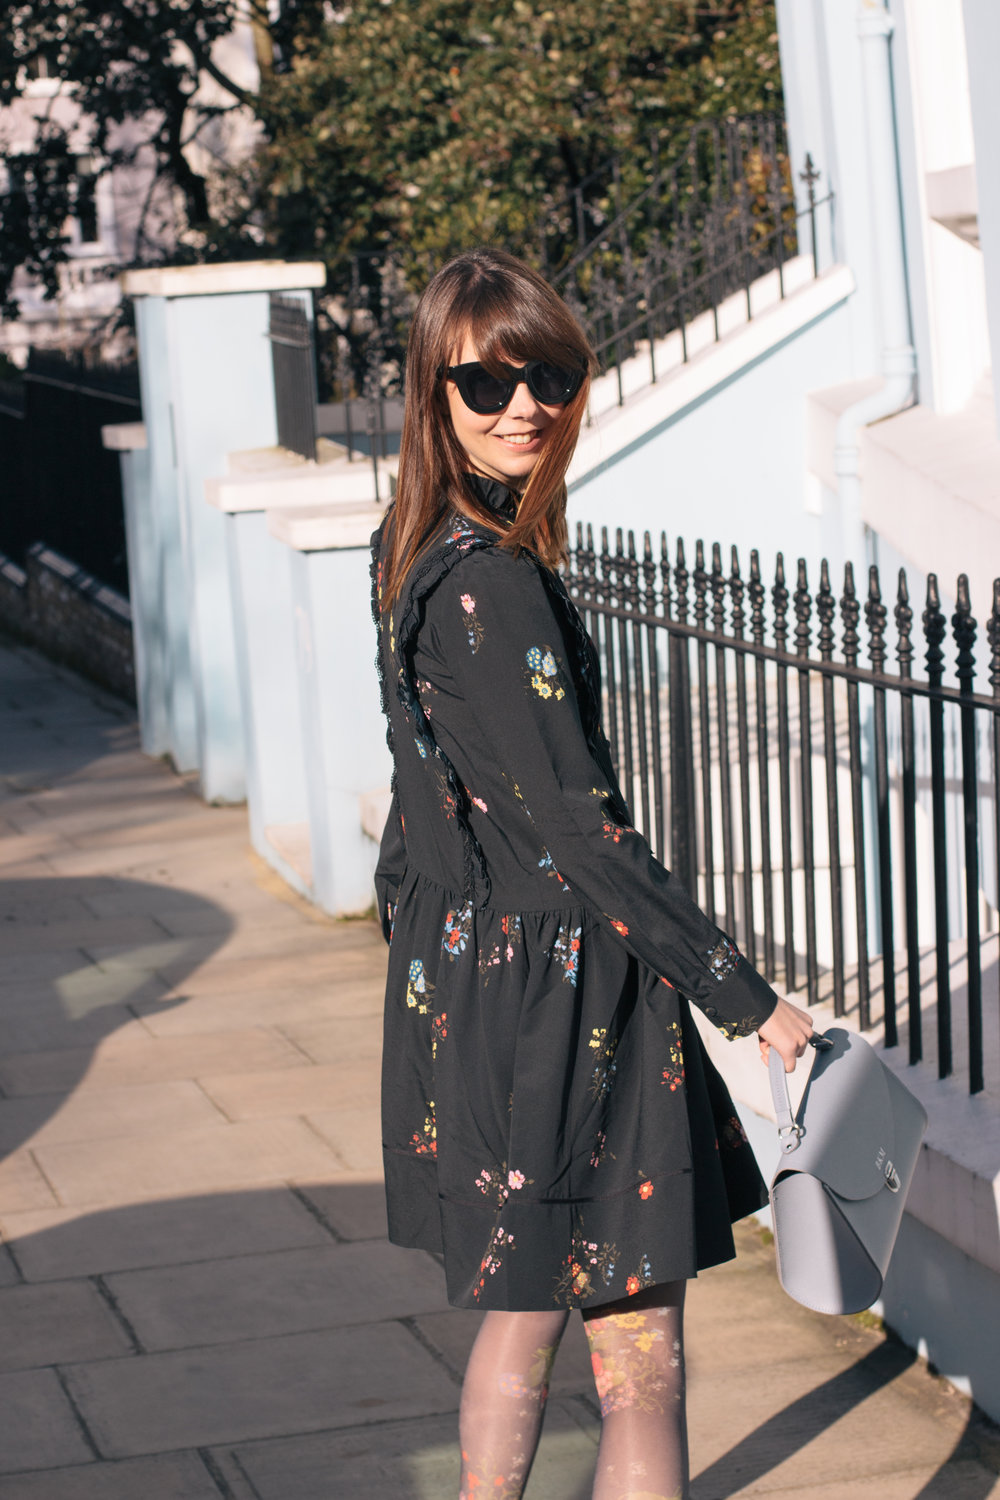 Is It Spring Yet? | Wearing Spring on my sleeve in and Erdem x H&M dress, a Poppy bag from Cambridge Satchel Company and velvet flats from Boden while wandering around looking at blooms and colorful houses in Notting Hill, West London | Sundays and Somedays